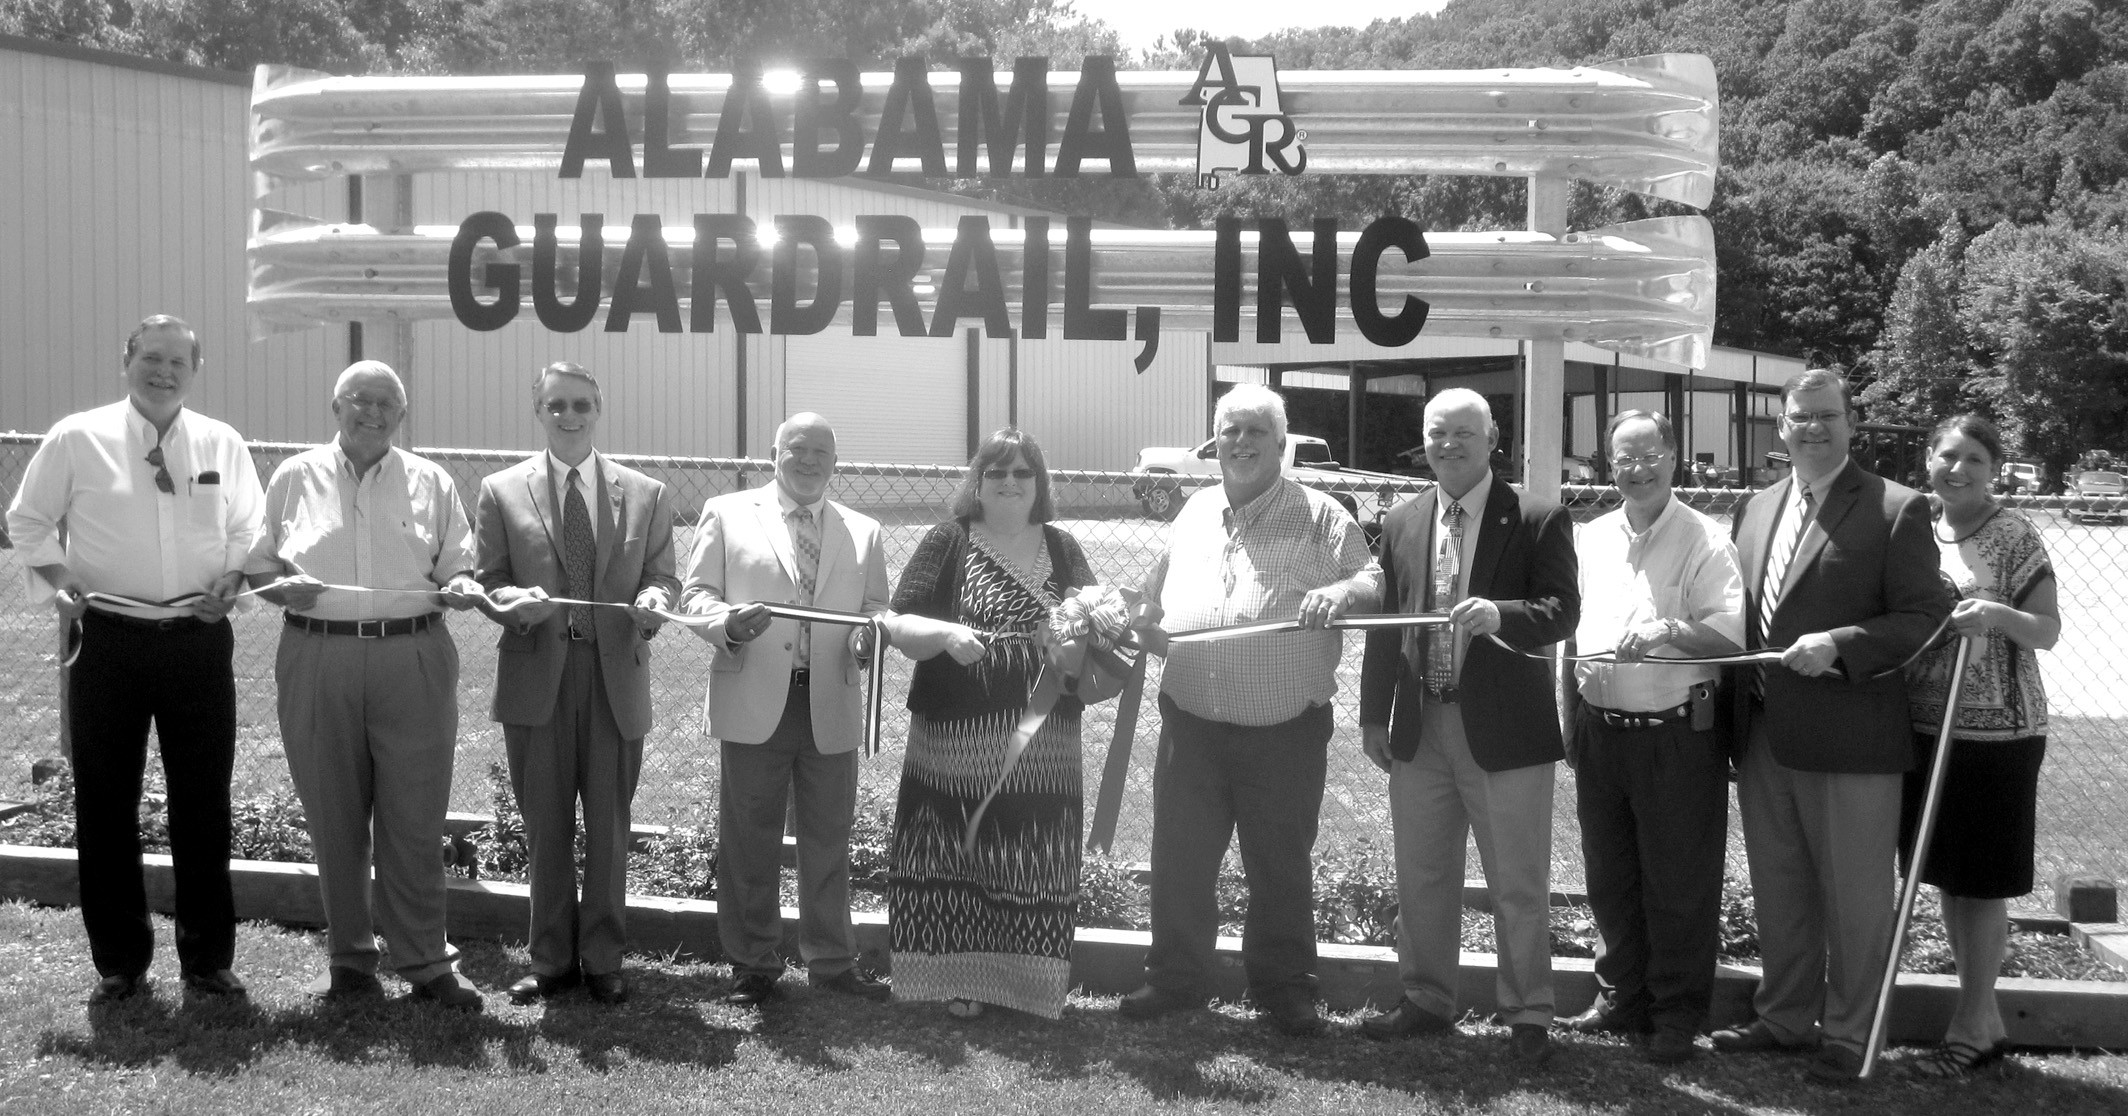 Officials gather to celebrate the grand opening of Alabama Guard Rail last week. From left: Cleveland Mayor Jerry Jones; Economic Development Council chairman Clyde Woods; Probate Judge Chris Green; District 4 Commissioner Gary Stricklin, company president Catherine Huff; company vice president Keith Dillard; Rep. David Standridge; Rep. Randall Shedd; Blount County Revenue Commissioner Gregg Armstrong; and Blount County-Oneonta Chamber of Commerce executive director Aimee Wilson. Most played a role in the company's relocation to the former Robertson property on U.S. 231 near the eastern town limits of Cleveland. The company, with 43 workers, many with strong Blount County ties, moved from its former location to escape periodic flooding of shop and offices at its site on Turkey Creek in Pinson. Alabama Guard Rail supplies roadway guard rails and provides installation throughout Alabama and part of Mississippi. The event was an unusually large grand opening, with more than 100 well-wishers present, many if not most, with personal ties to the company, its owners, and/or its employees. 'We want to be a helpful part of the community. However we can help, we want to do,' Huff said. – Ron Gholson